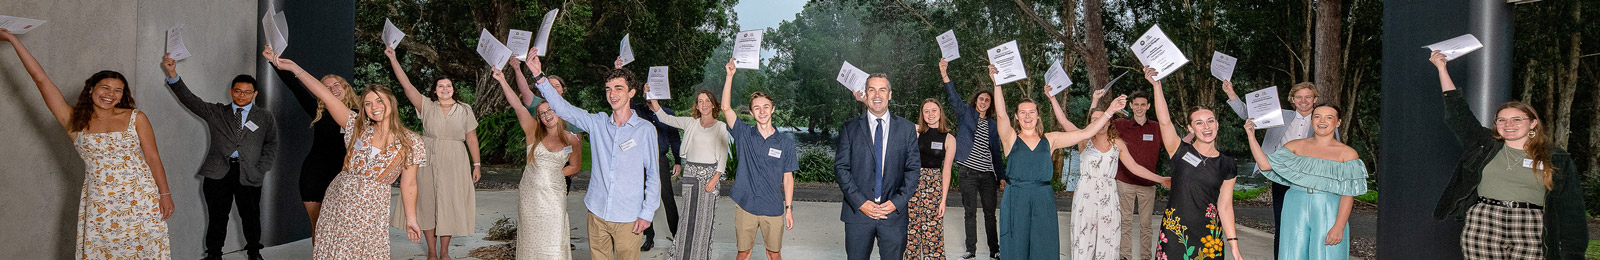 Image of our 20 scholarship recipients holding their certificates in the air and smiling, with Mayor Ryan Palmer in the centre